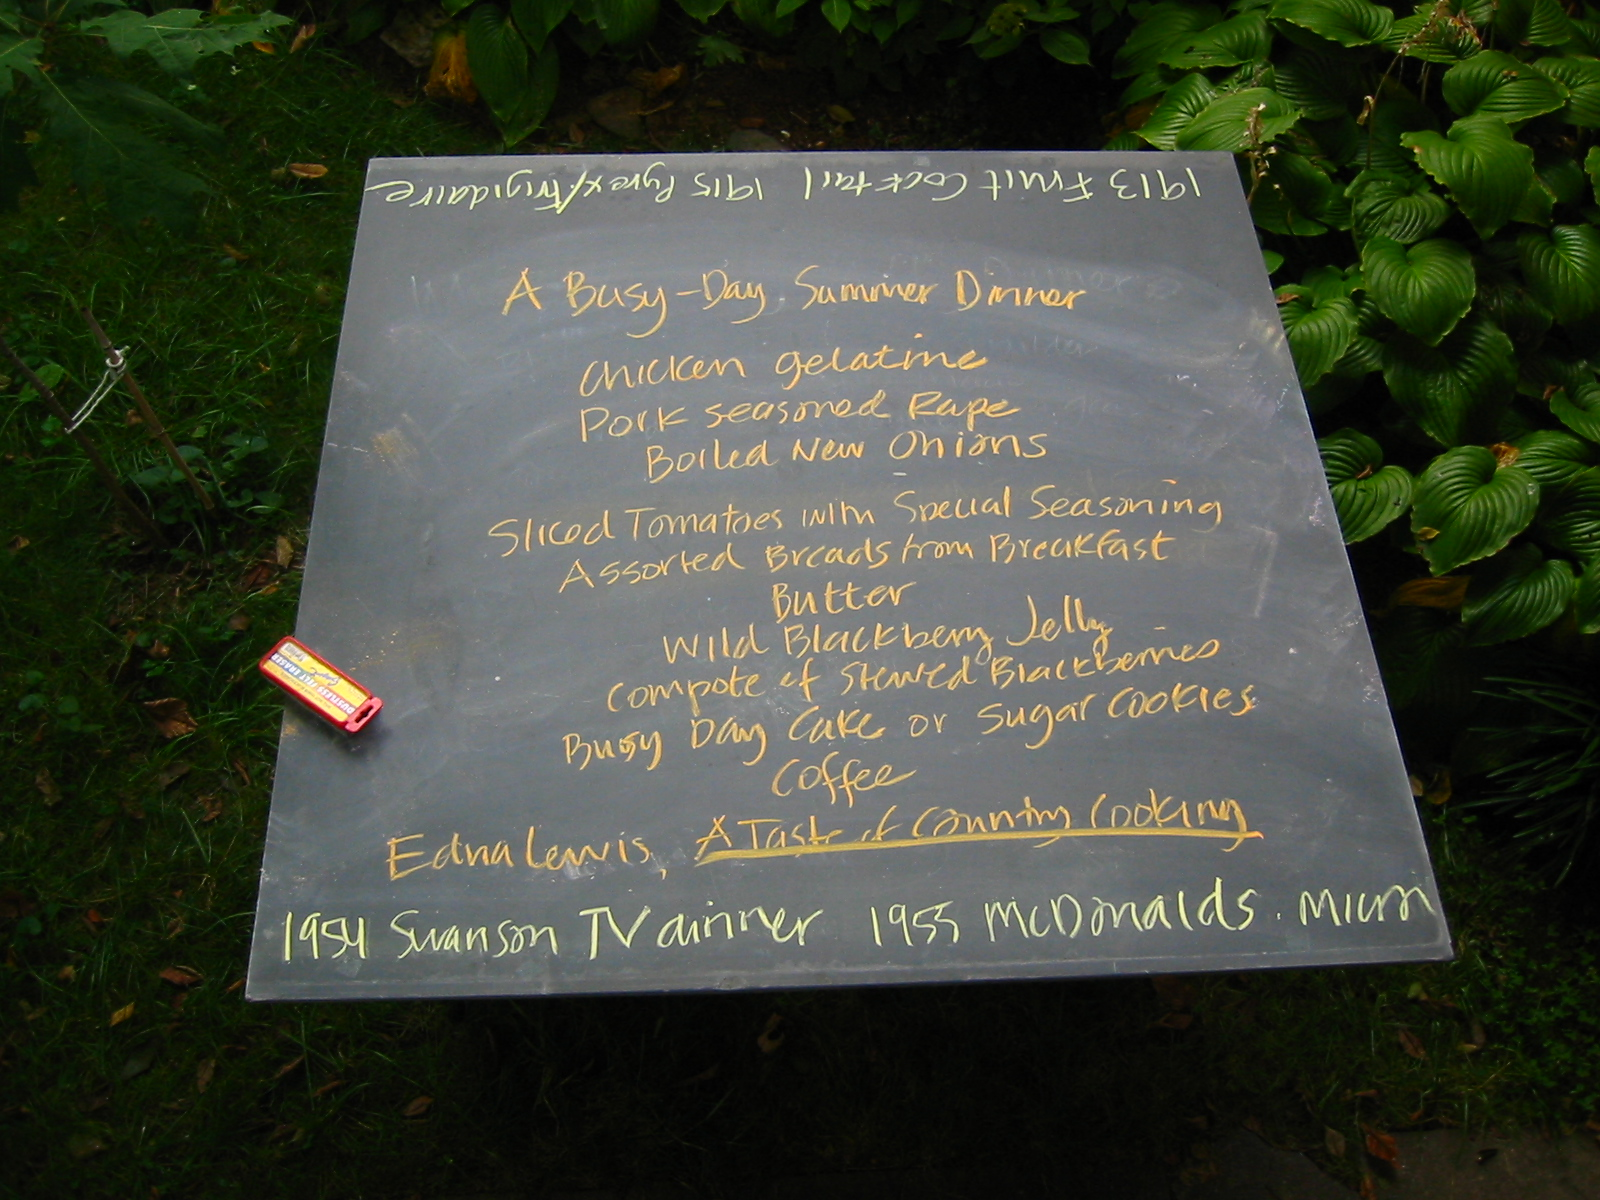 'a busy day summer menu' mock-up for Honeycutt sculpture, at Table, 2005